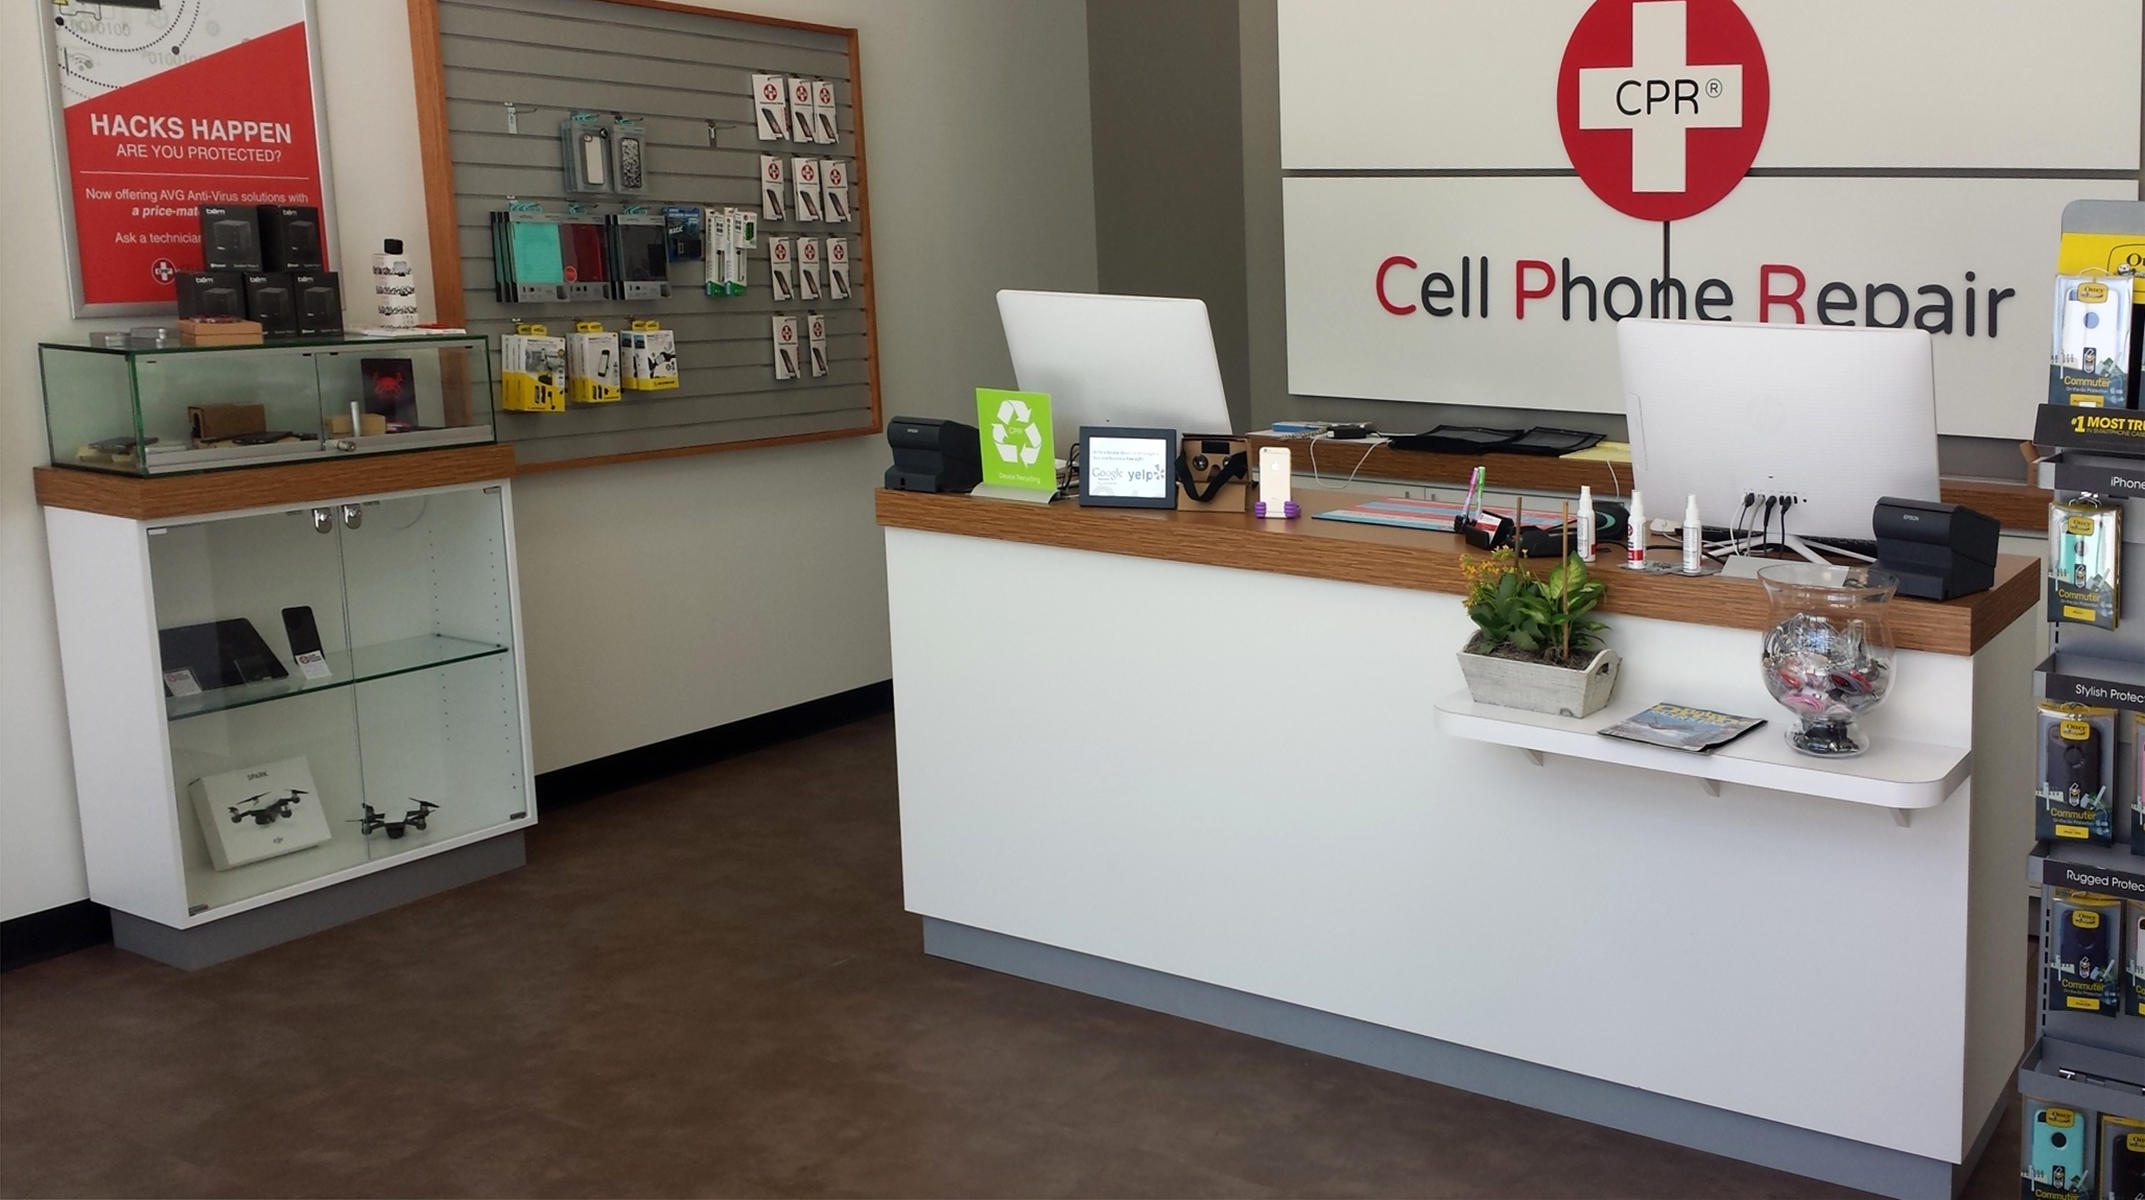 CPR Cell Phone Repair Morrisville - Cary image 1